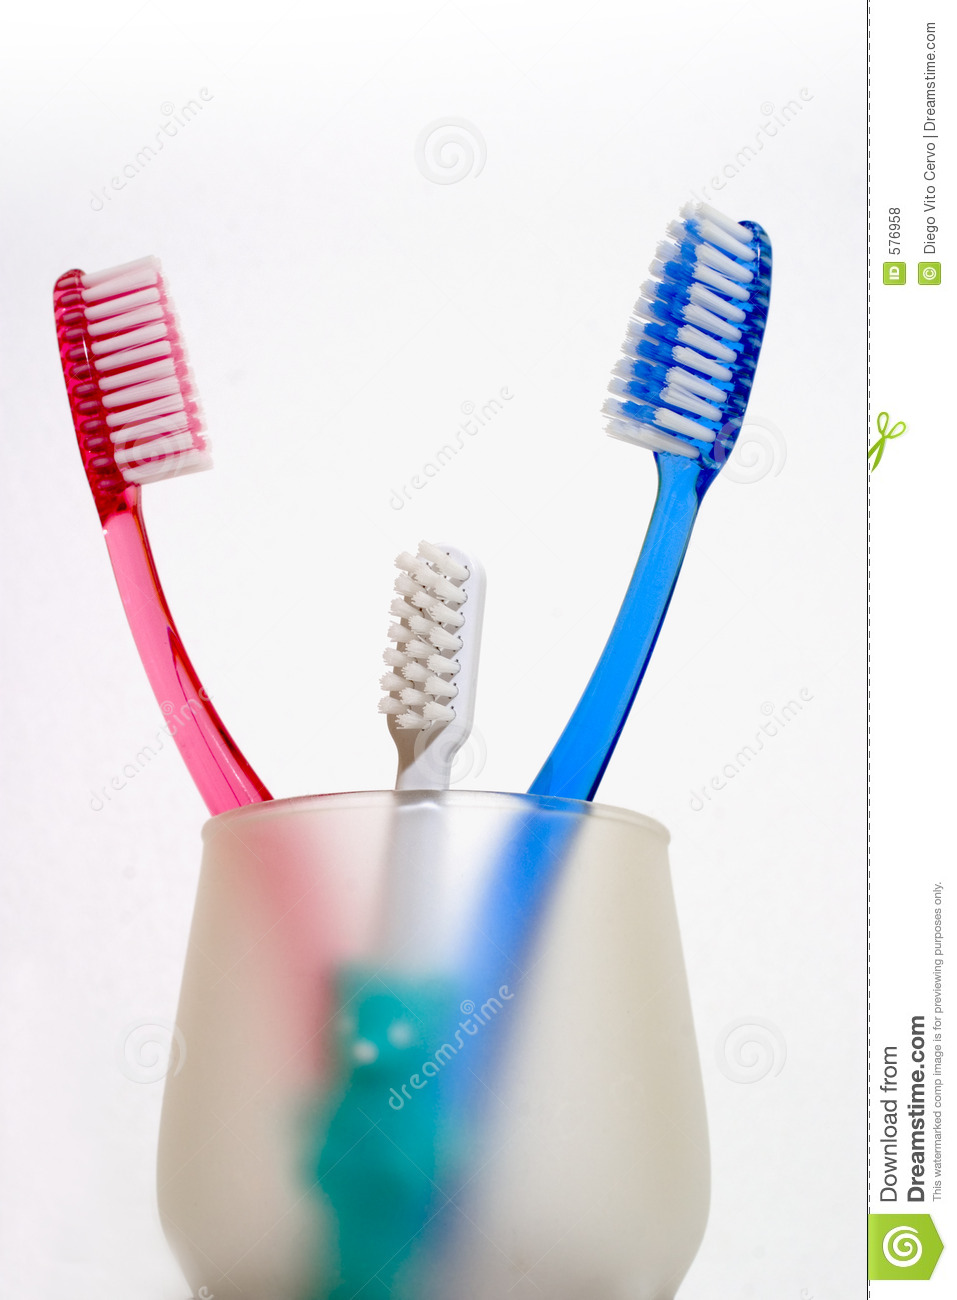 Toothbrushes08